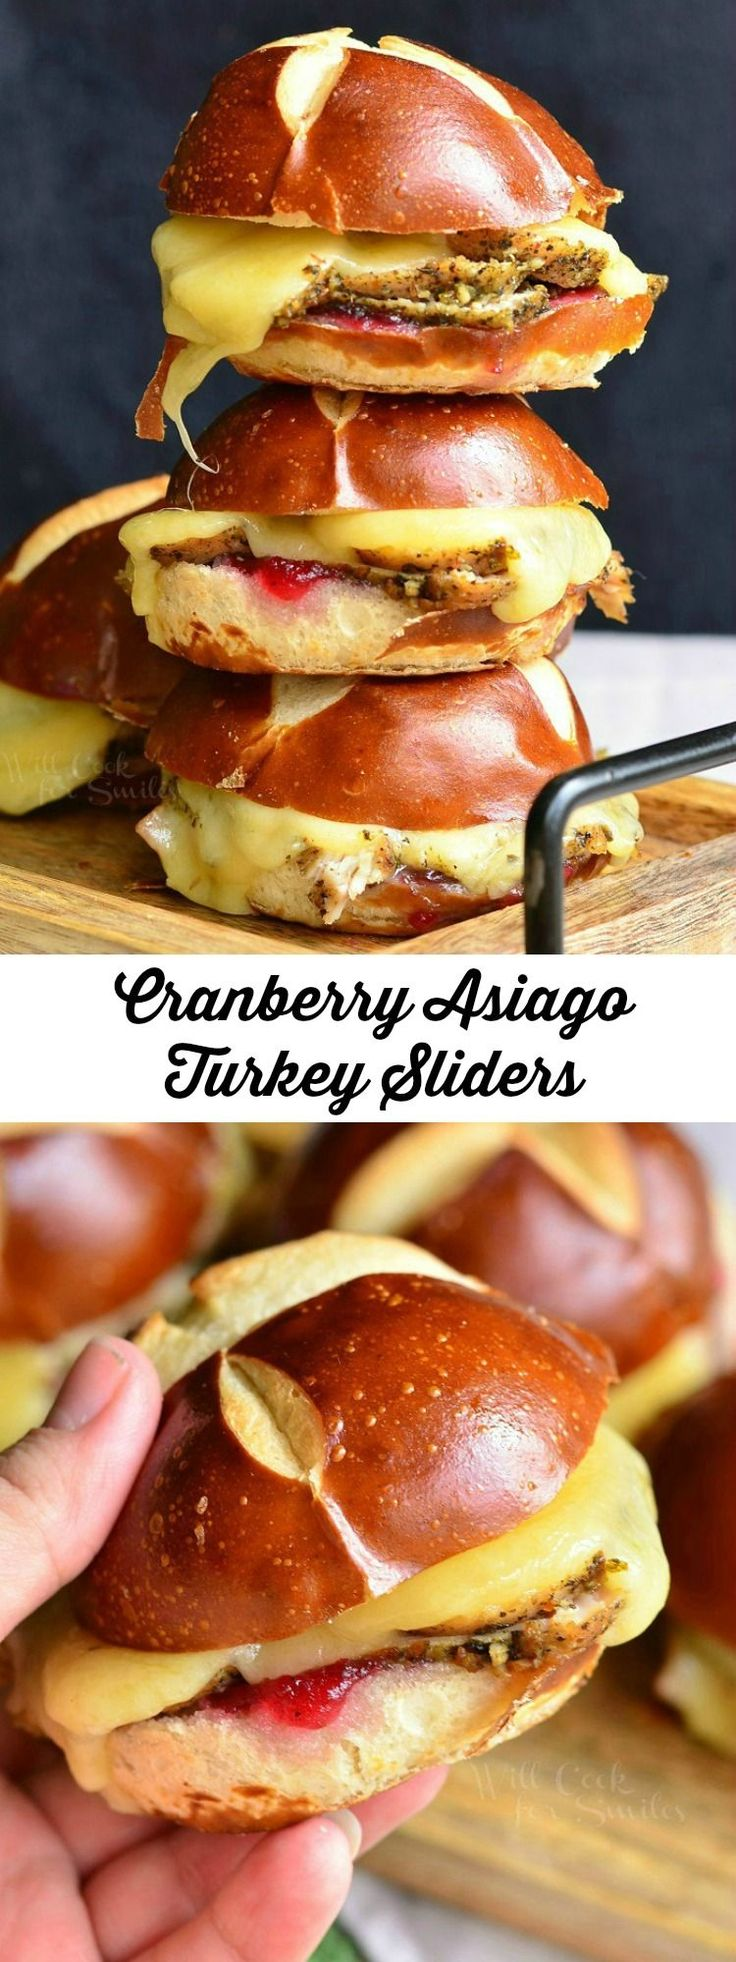 Cranberry Asiago Turkey Sliders. Tasty little sliders made with turkey breast, cranberry sauce and Asiago cheese. These sliders are served warm on pretzel slider buns.